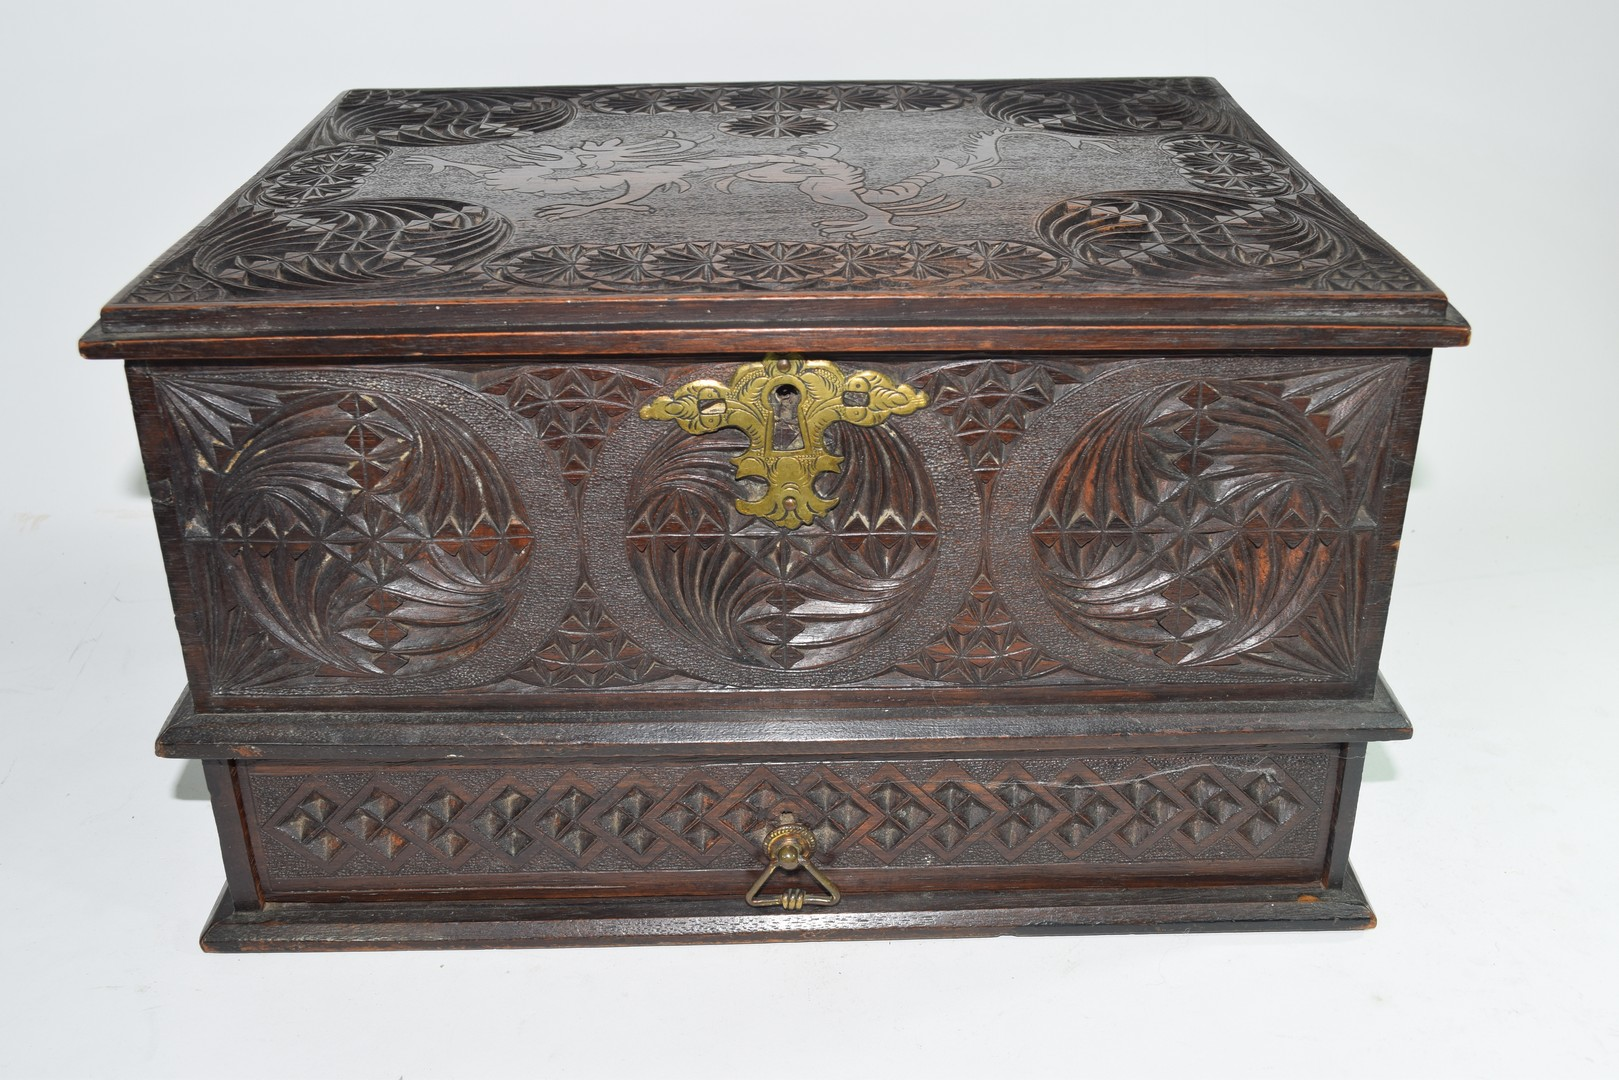 Late 19th/early 20th century Far Eastern table top box - Image 2 of 5